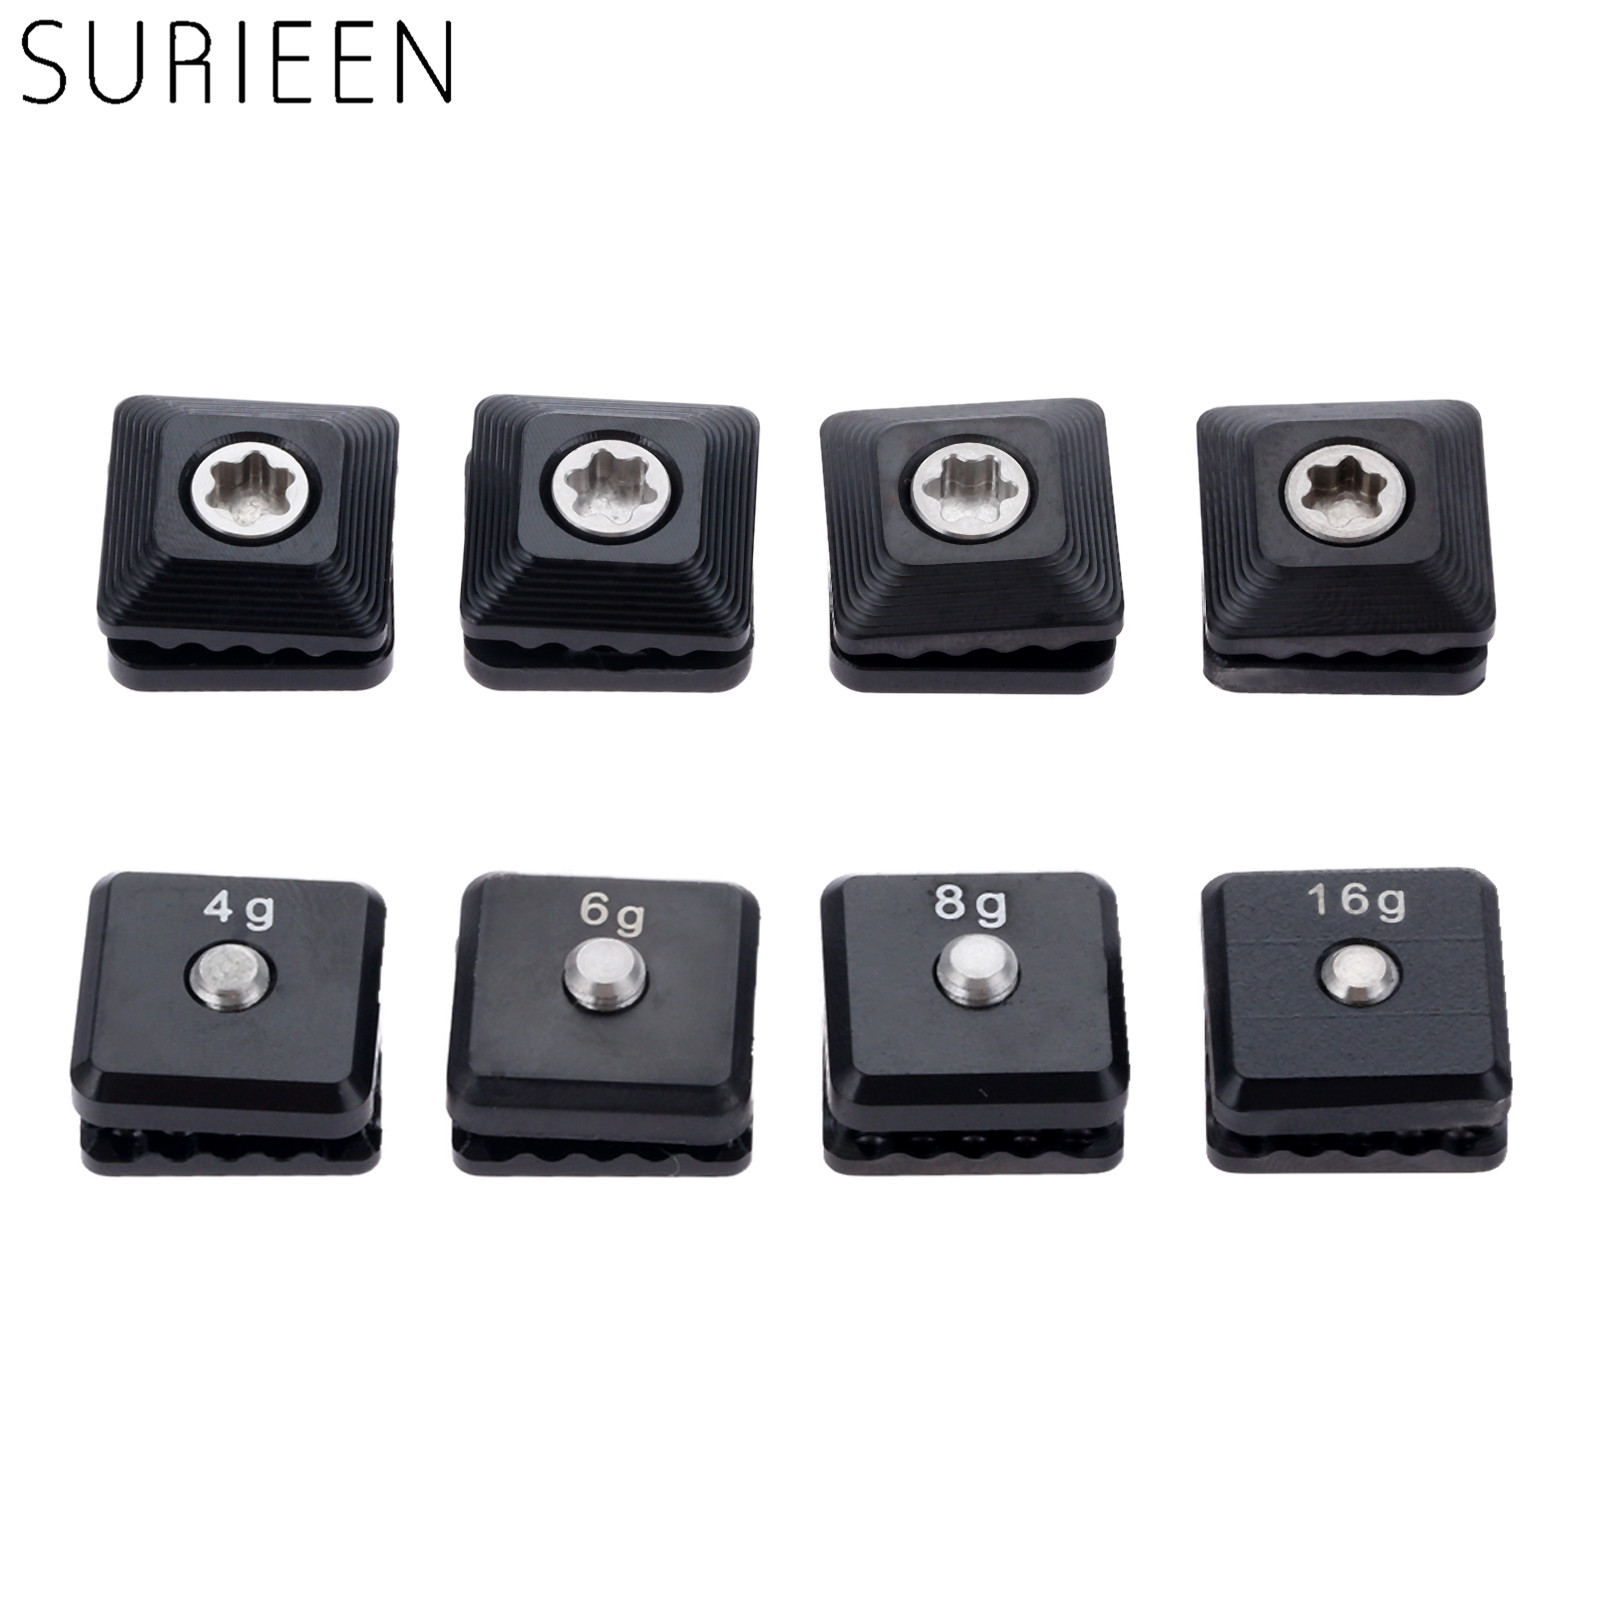 SURIEEN 4Pcs Alloy Golf Weight Screw Replacement For Taylormade M5 Driver Head Club Heads Accessories 4g 6g 7g 8g 11g 12g 16g